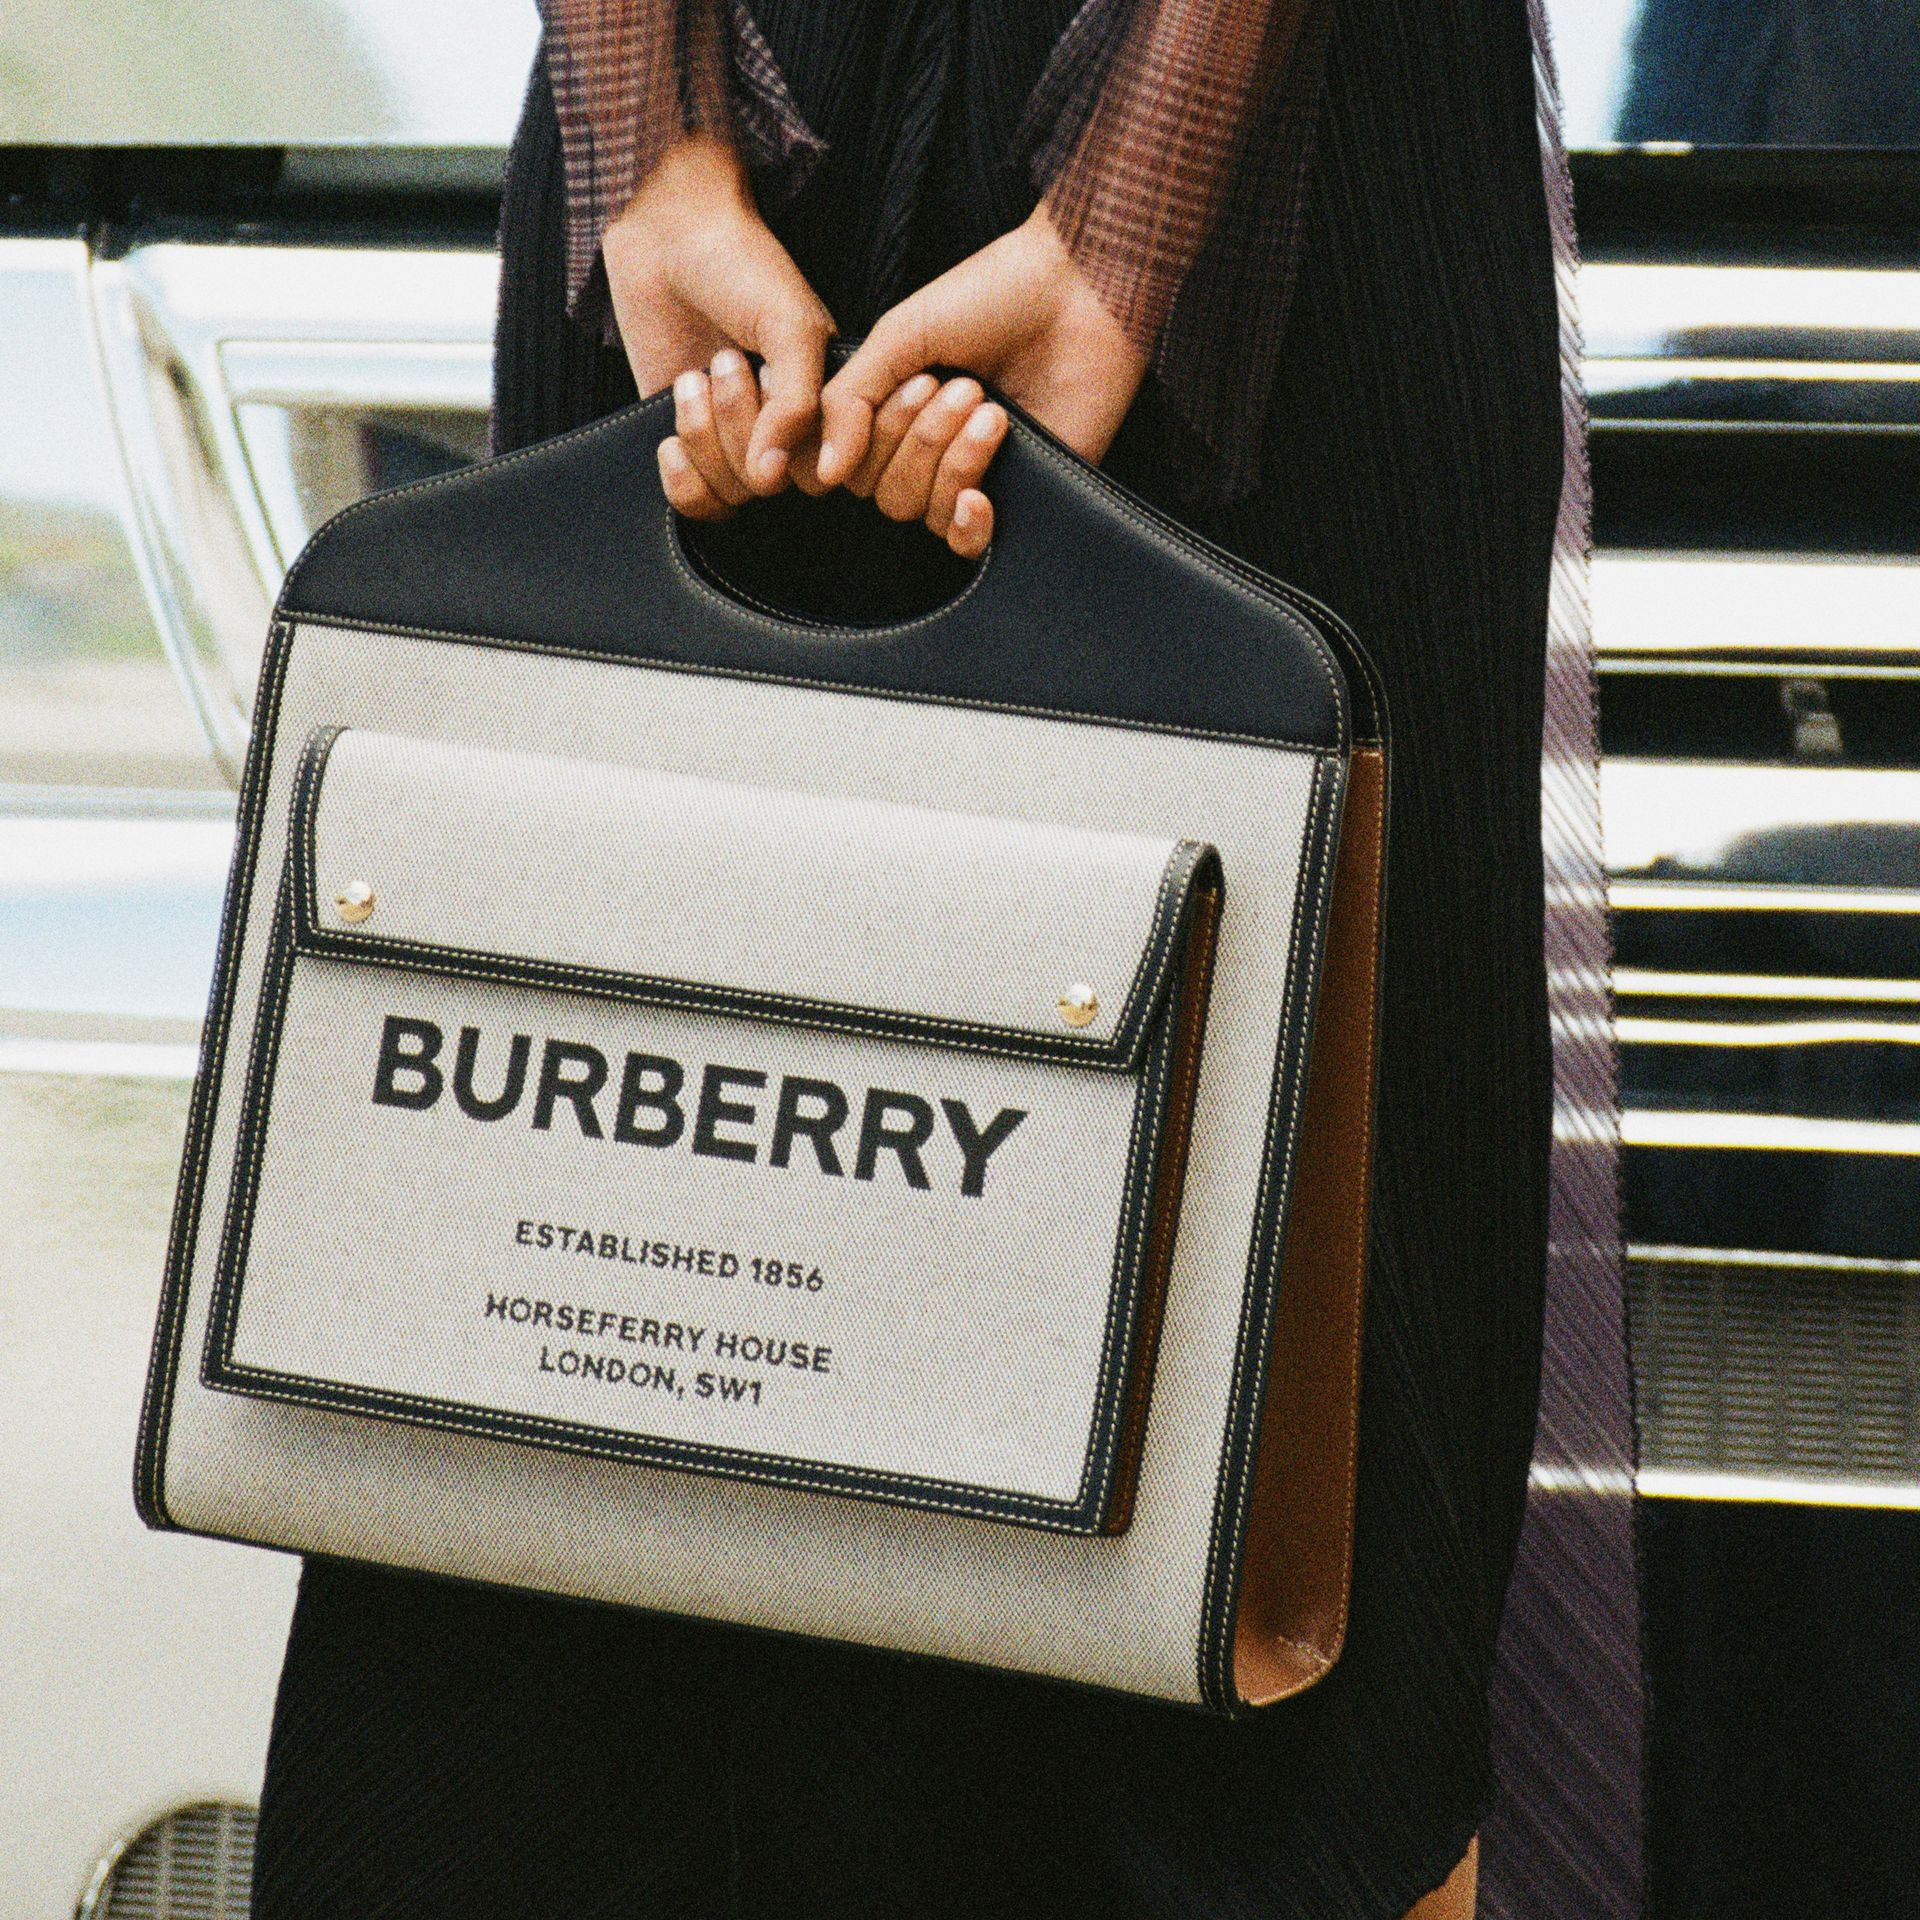 Medium Two-tone Canvas and Leather Pocket Bag in Black/tan - Women | Burberry - gallery image 9